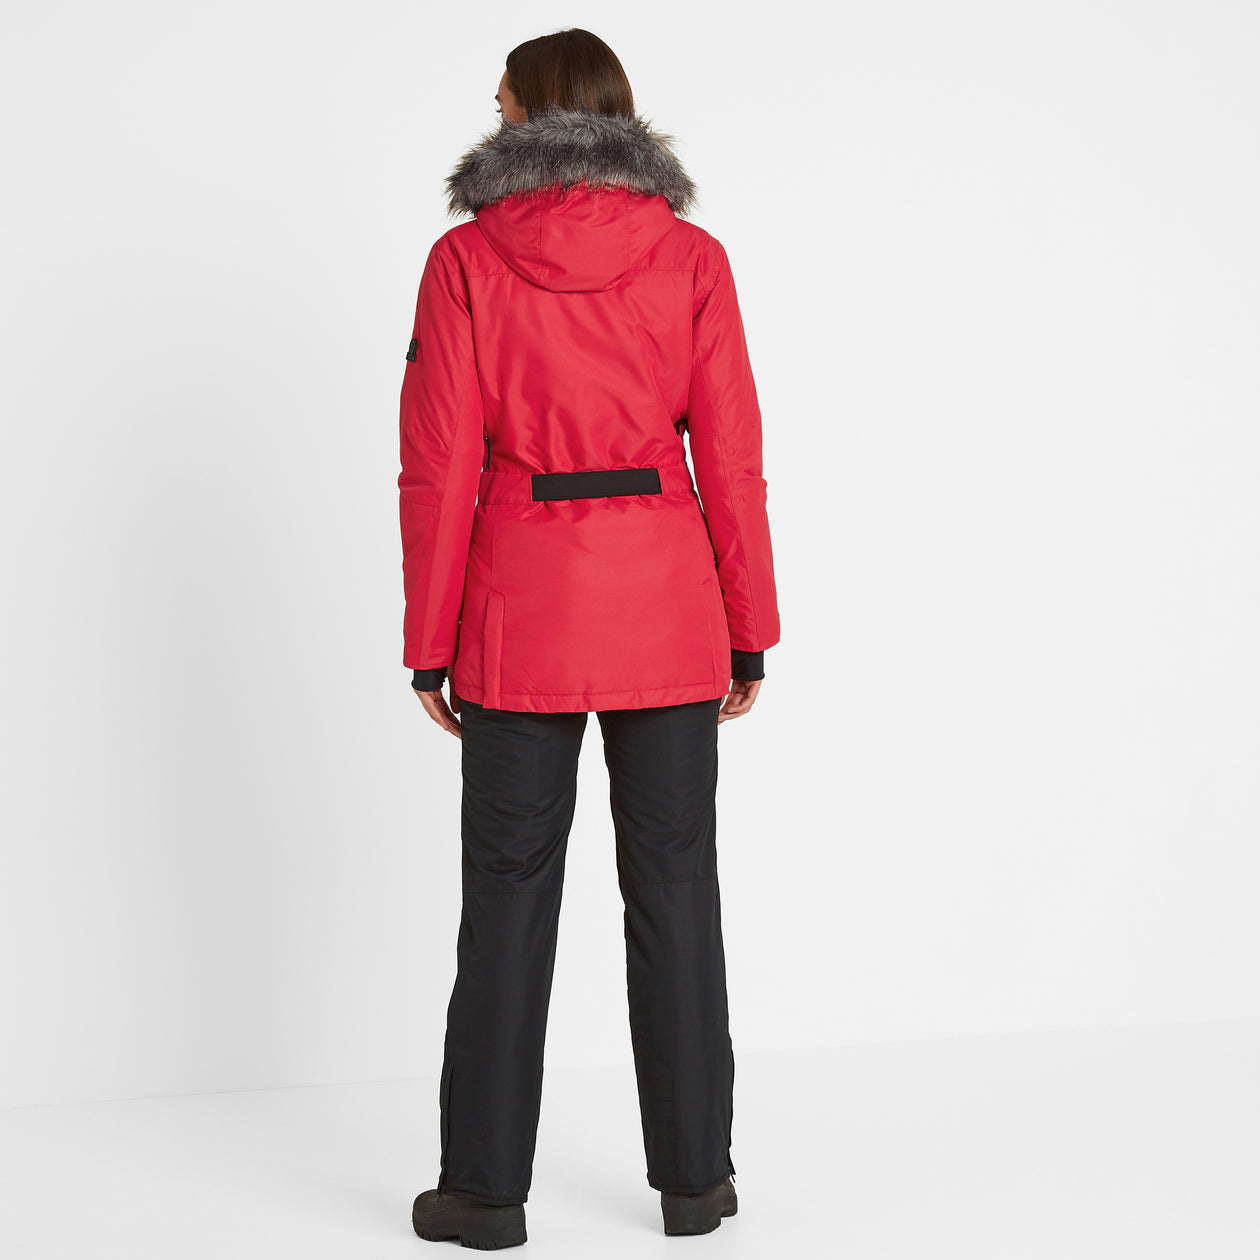 Aria Womens Waterproof Insulated Ski Jacket - Rouge image 4